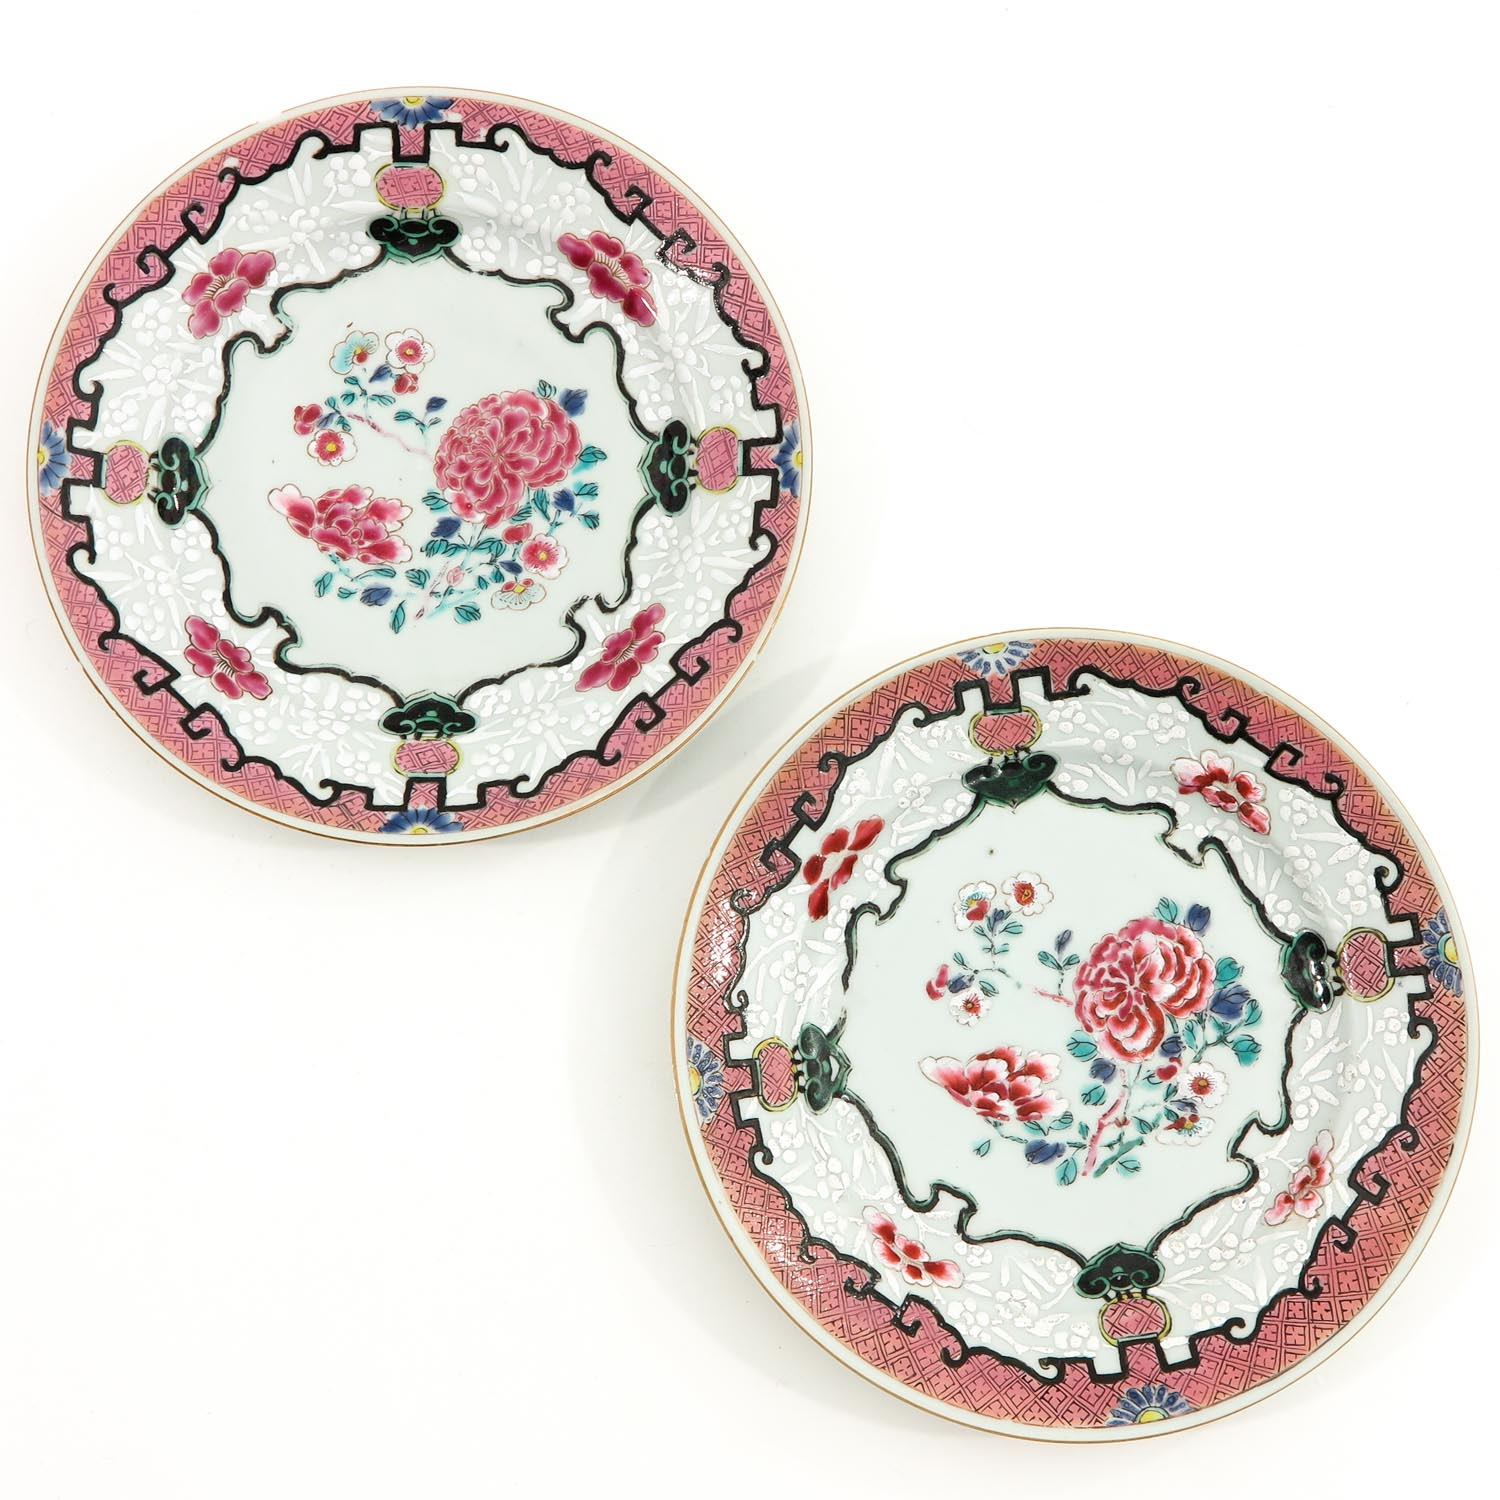 A Series of 4 Famille Rose Plates - Image 5 of 9